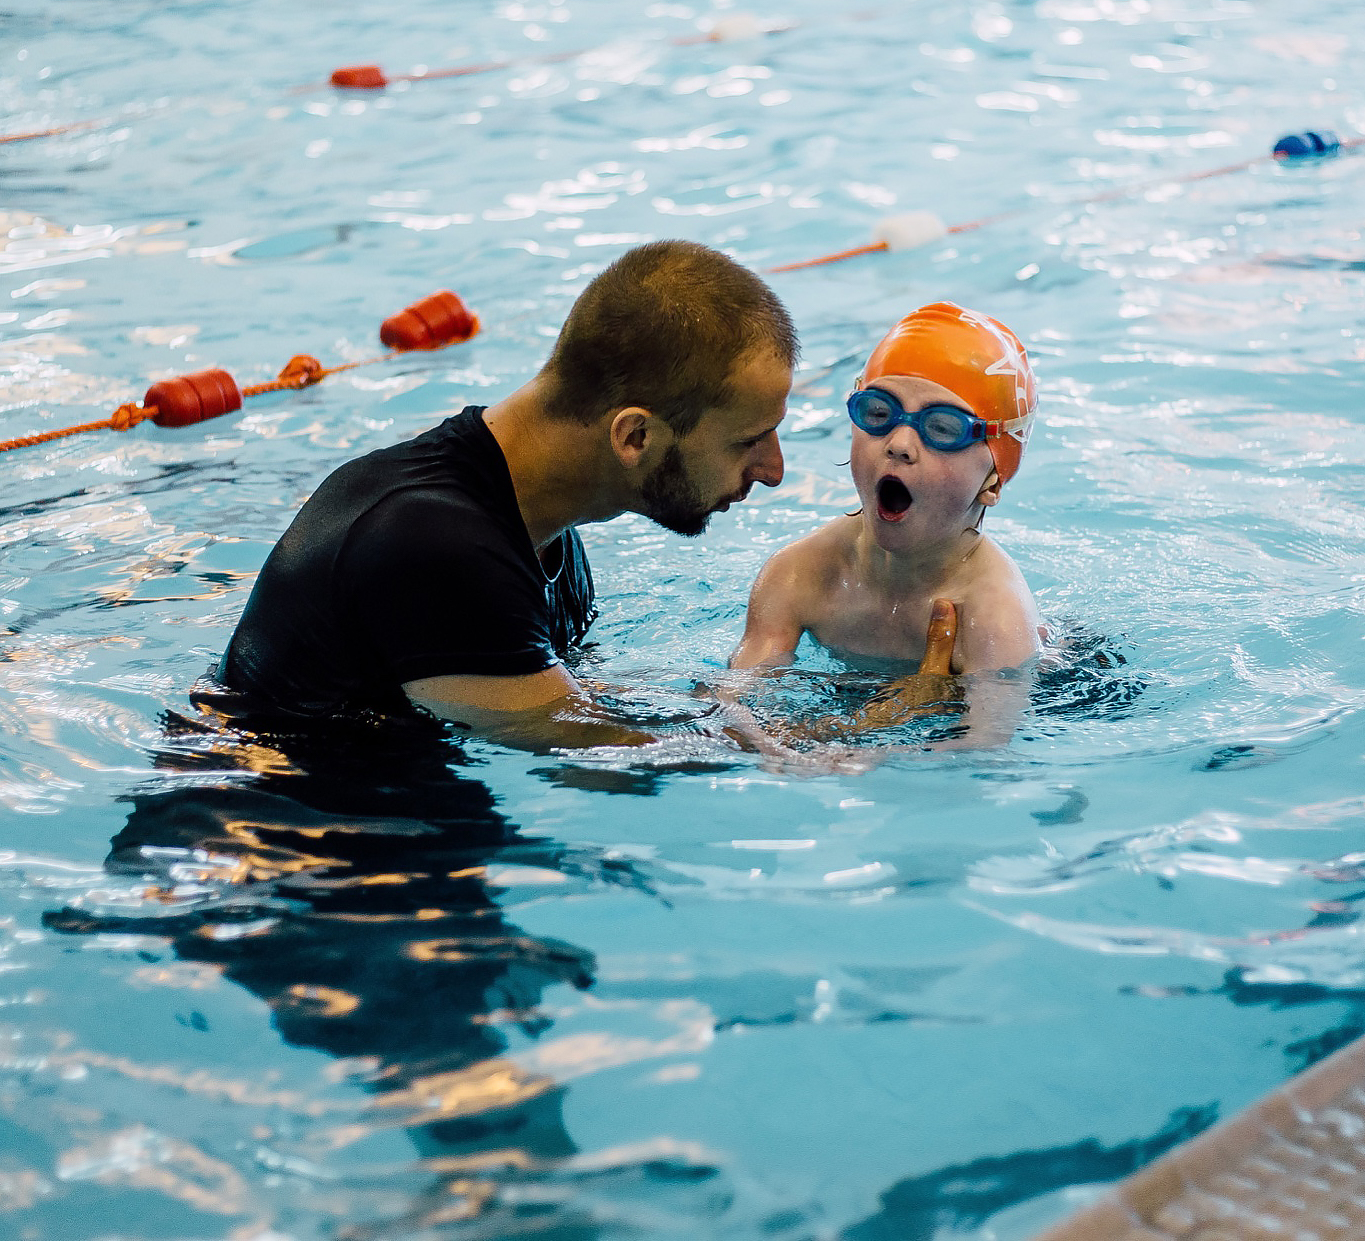 We are passionate about ensuring each of our swimmers has a positive experience which will enhance their life long after they leave the water. - Over our four or five consecutive-day clinics, your children will have lots of fun learning new skills from some of the best teachers in the business.